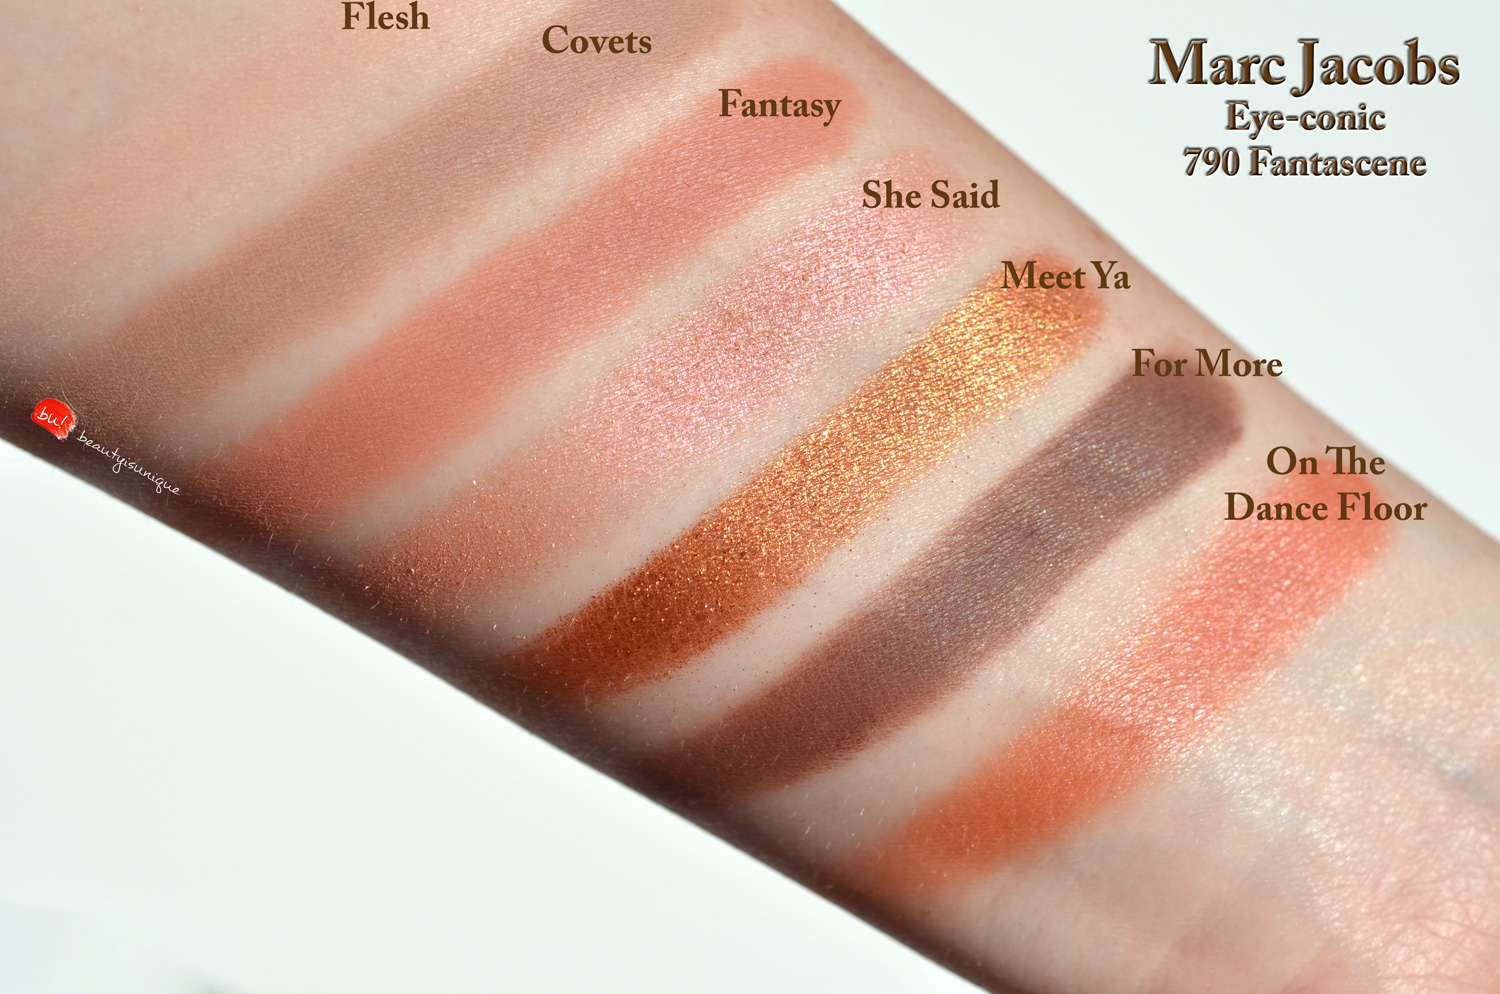 marc-jacobs-fantascene-790-eye-conic-swatches